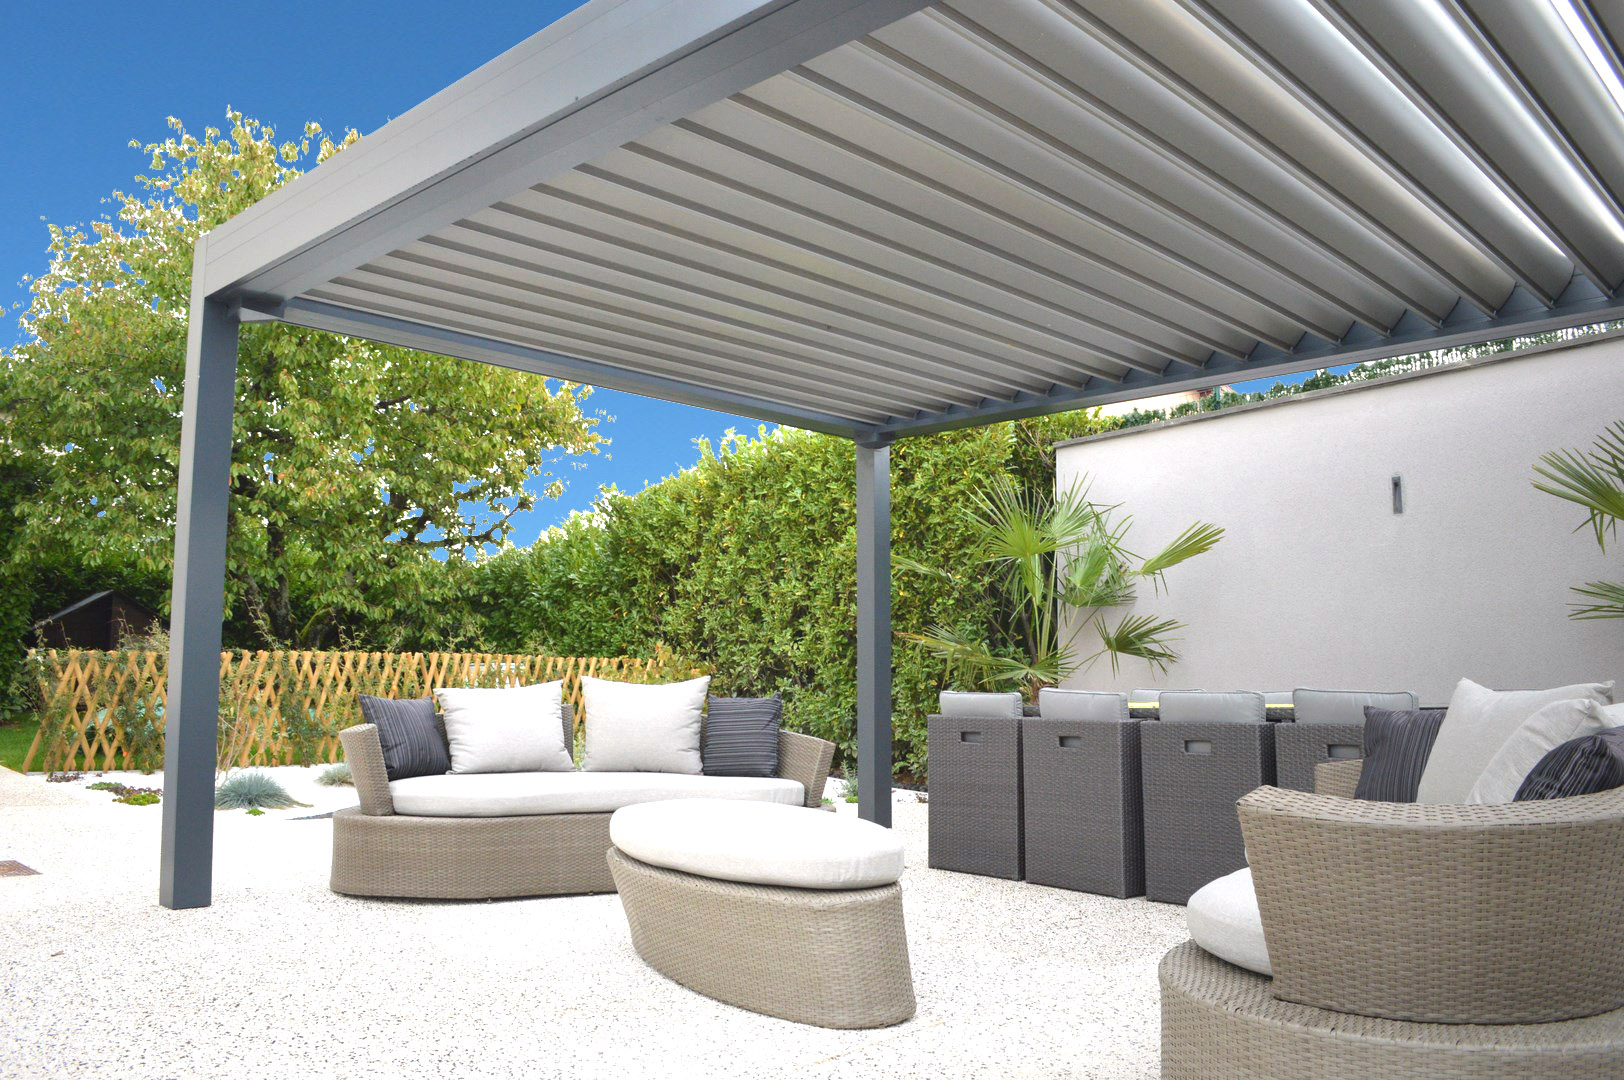 r alisation d 39 une pergola en pose libre genas pergola pergolas lyon. Black Bedroom Furniture Sets. Home Design Ideas